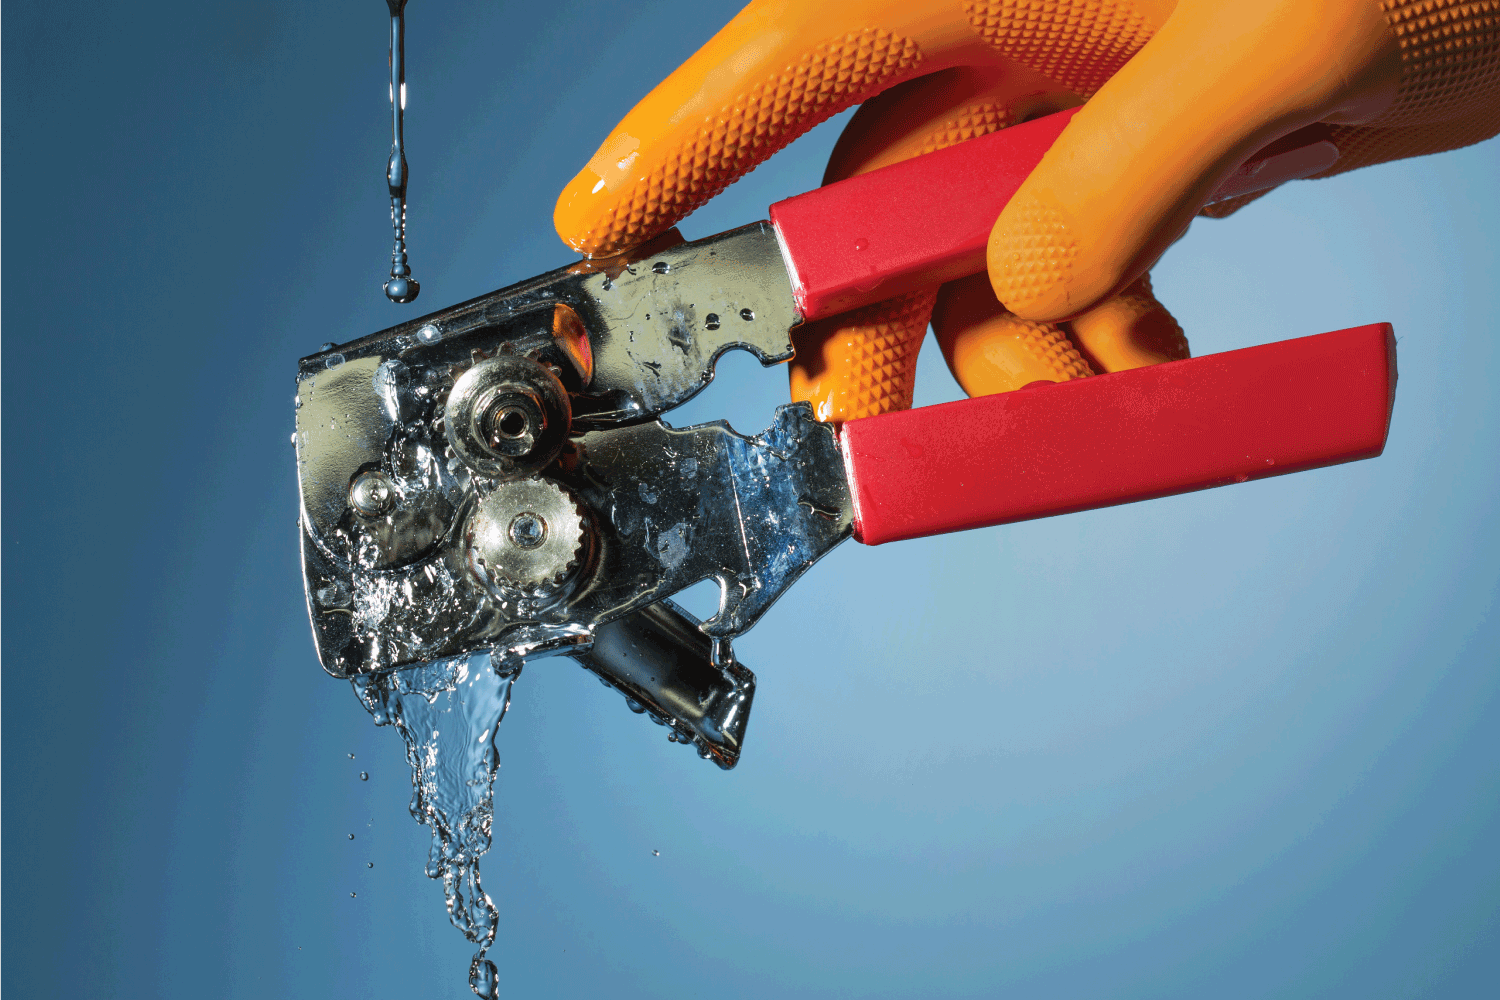 Rinsing a can opener on running water